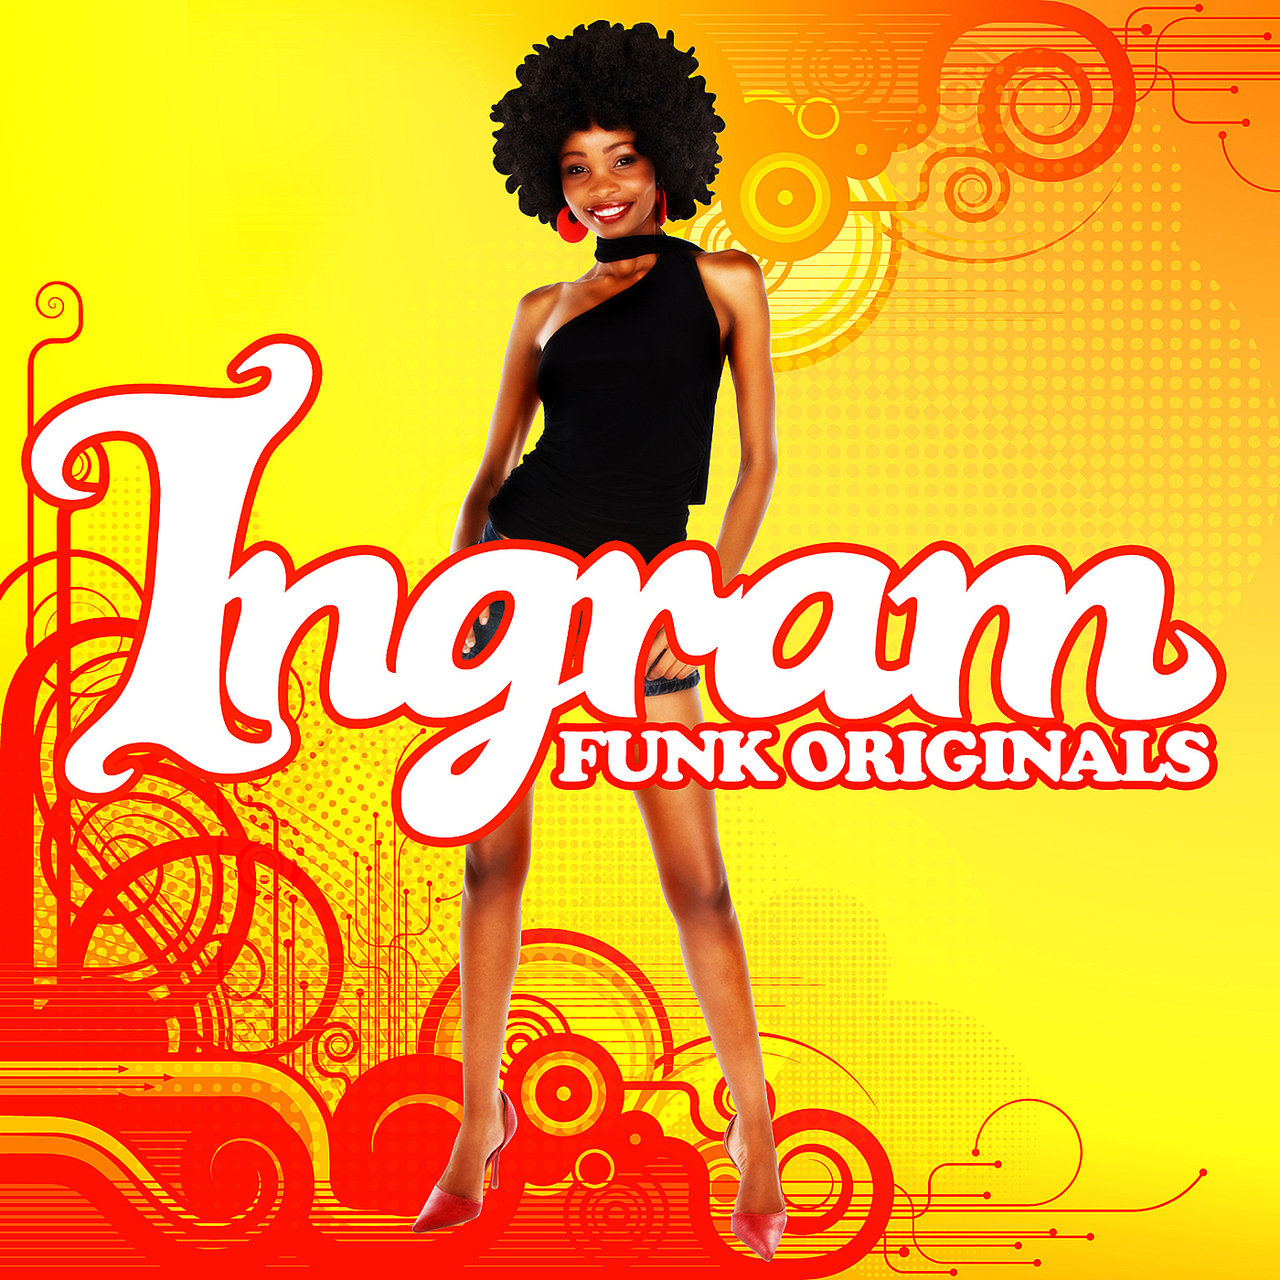 ingram singles Meet ingram singles online & chat in the forums dhu is a 100% free dating site to find personals & casual encounters in ingram.